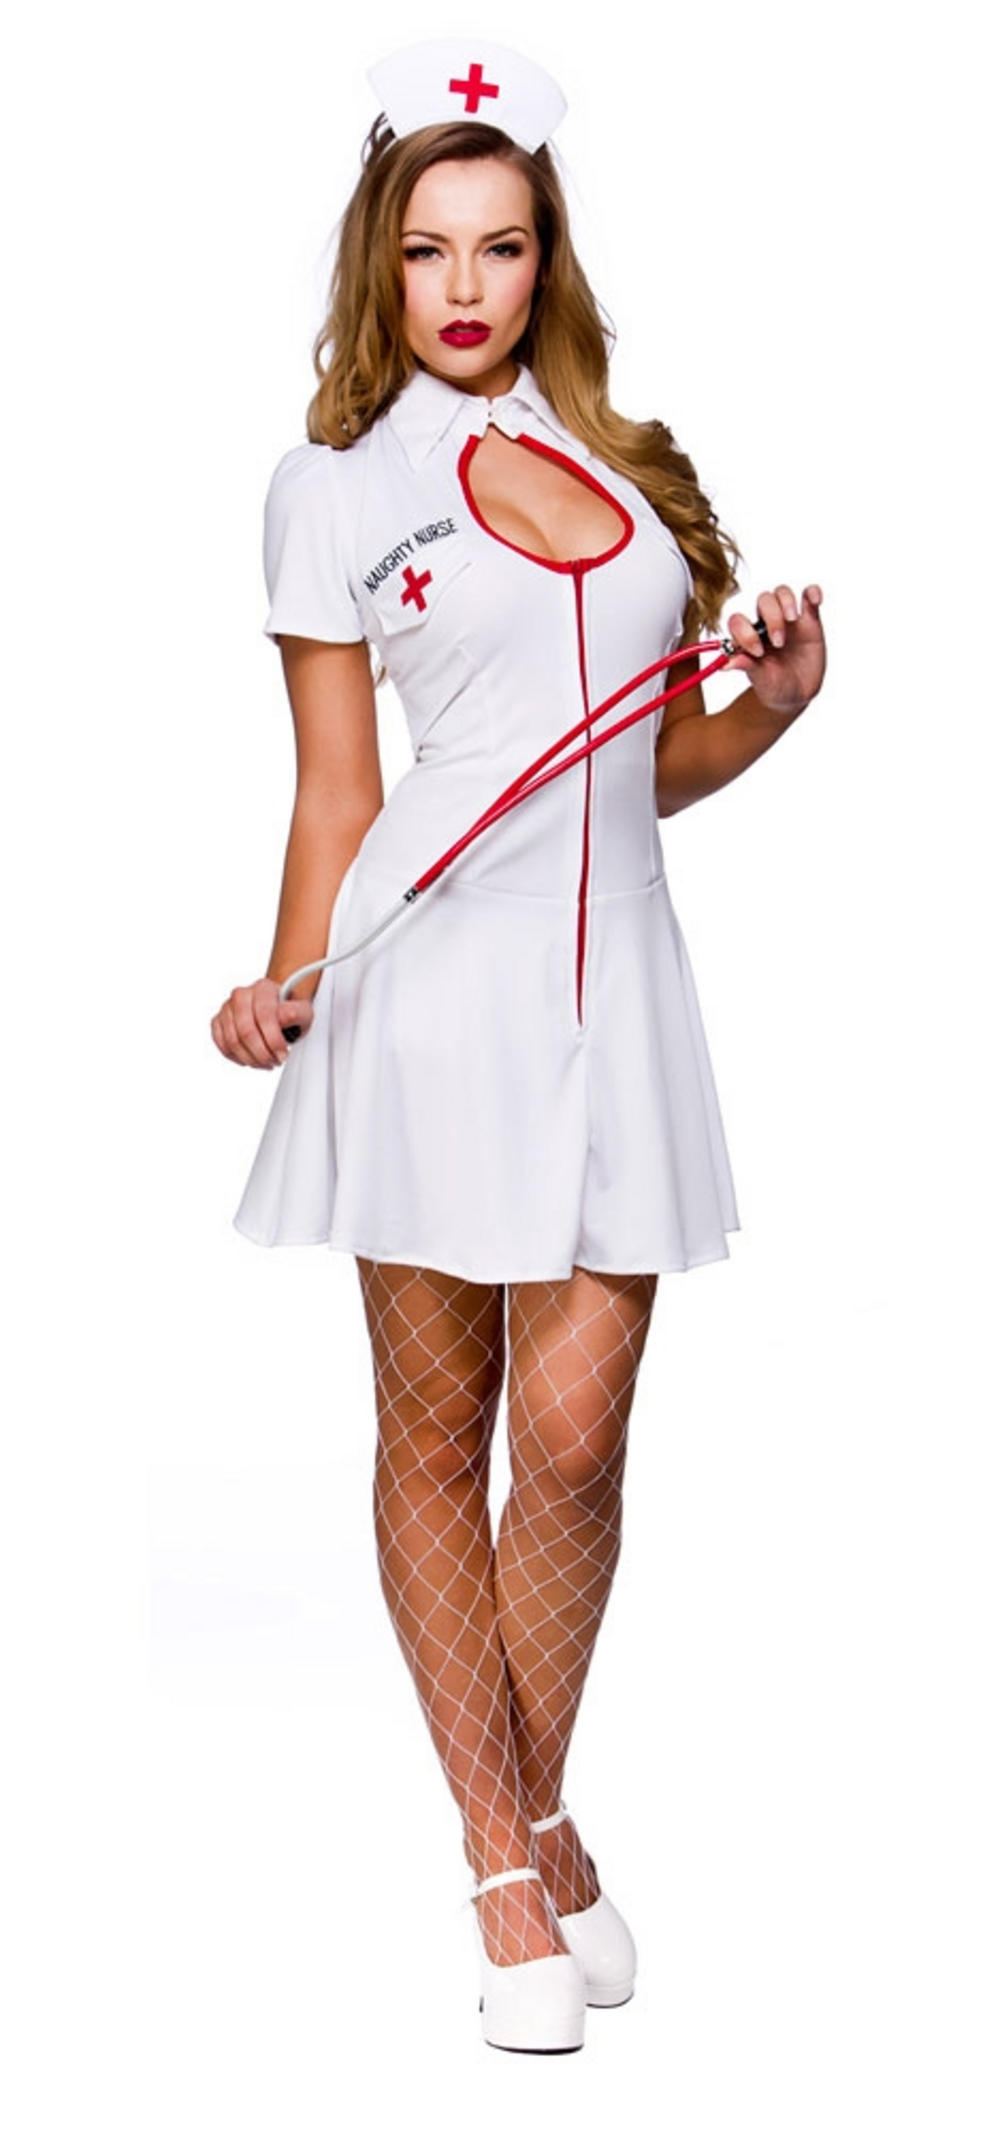 Naughty nurse pictures